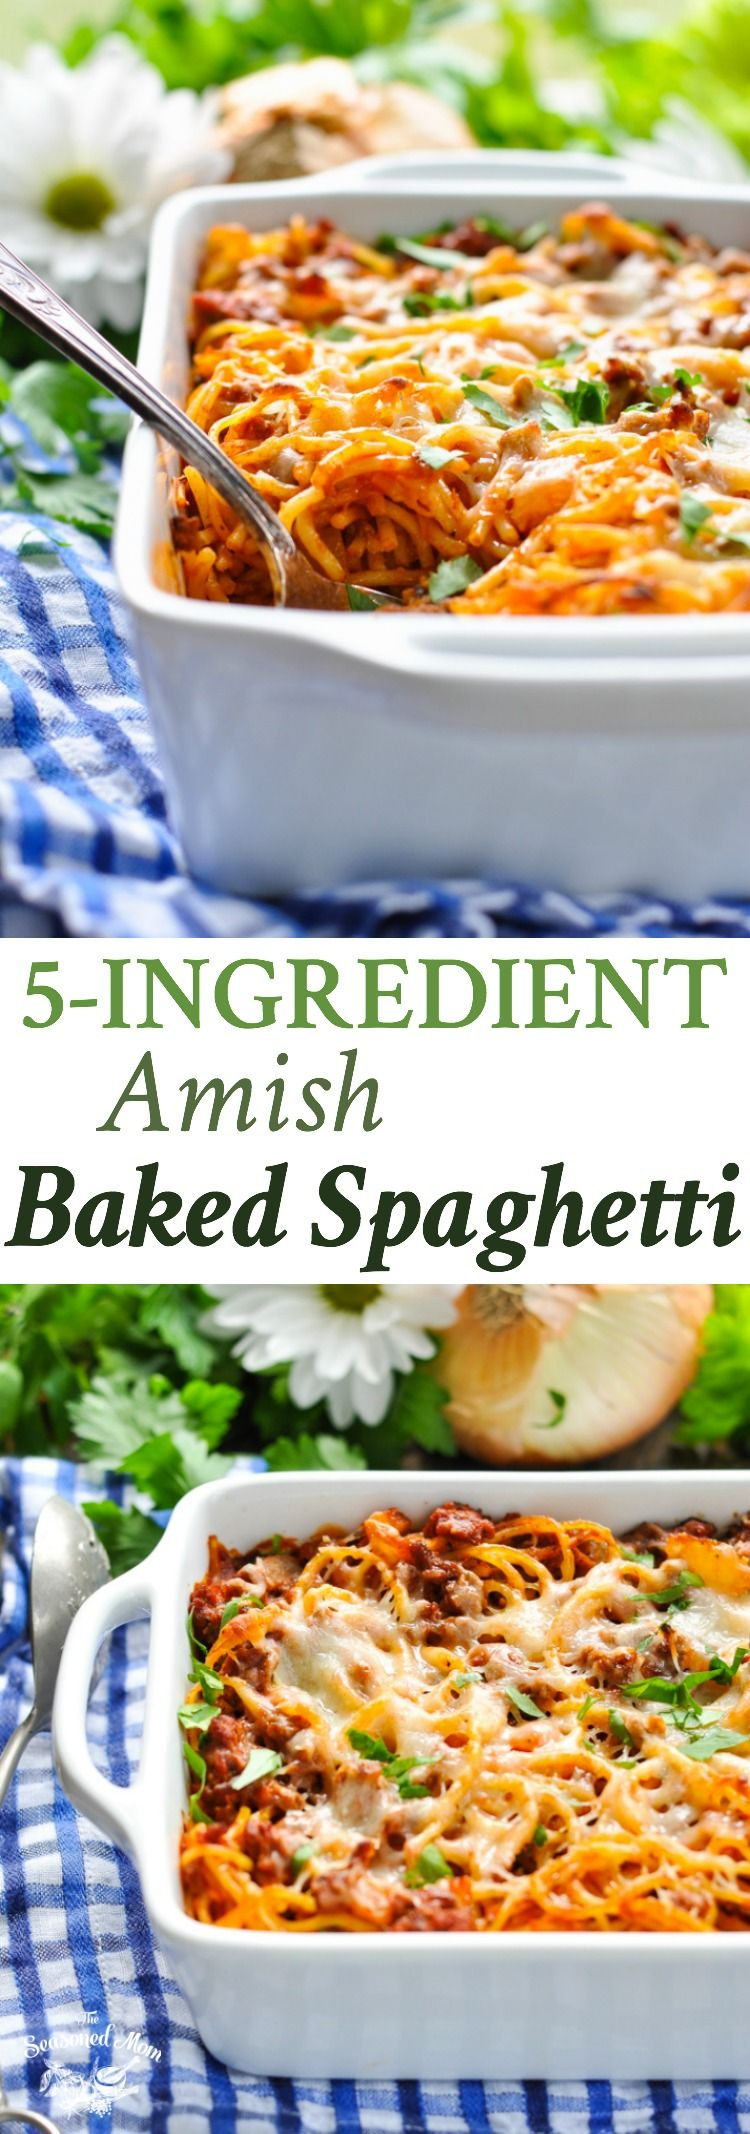 5 Ingredient Amish Baked Spaghetti Recipe Easy Dinner Recipes Beef Recipes Easy